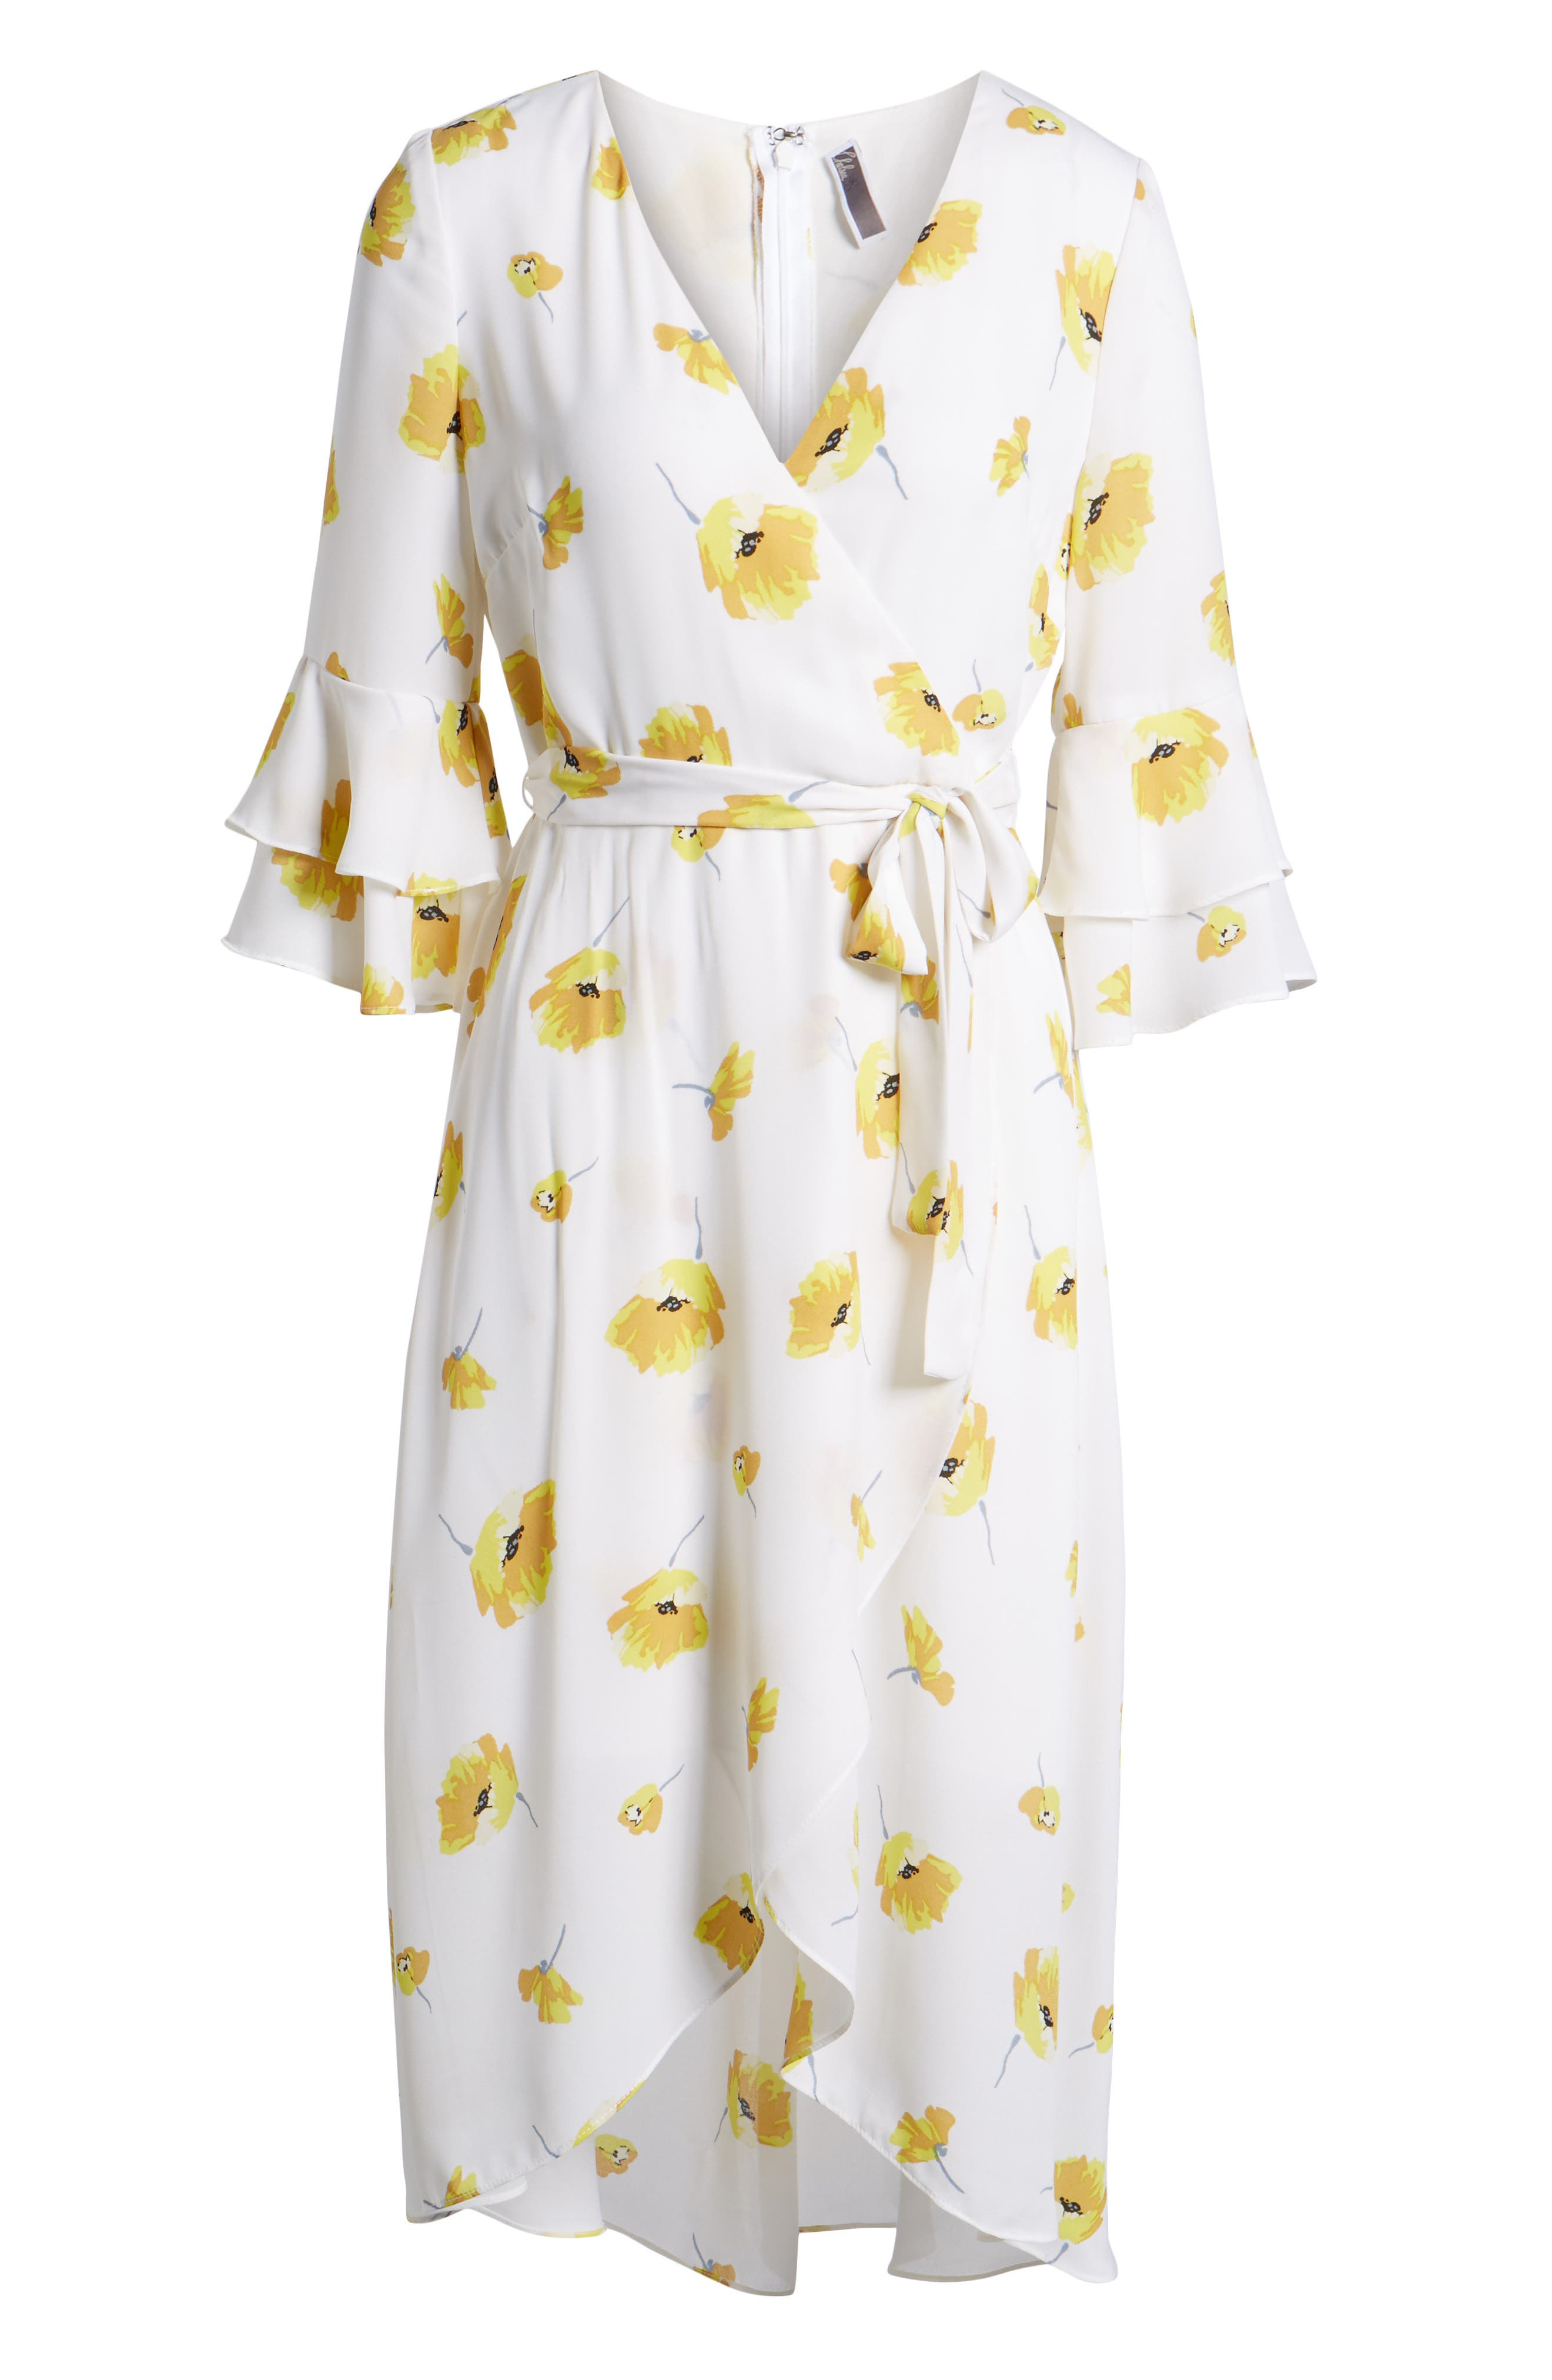 Floral Faux Wrap Dress,                             Alternate thumbnail 7, color,                             Ivory Gold Floral Print